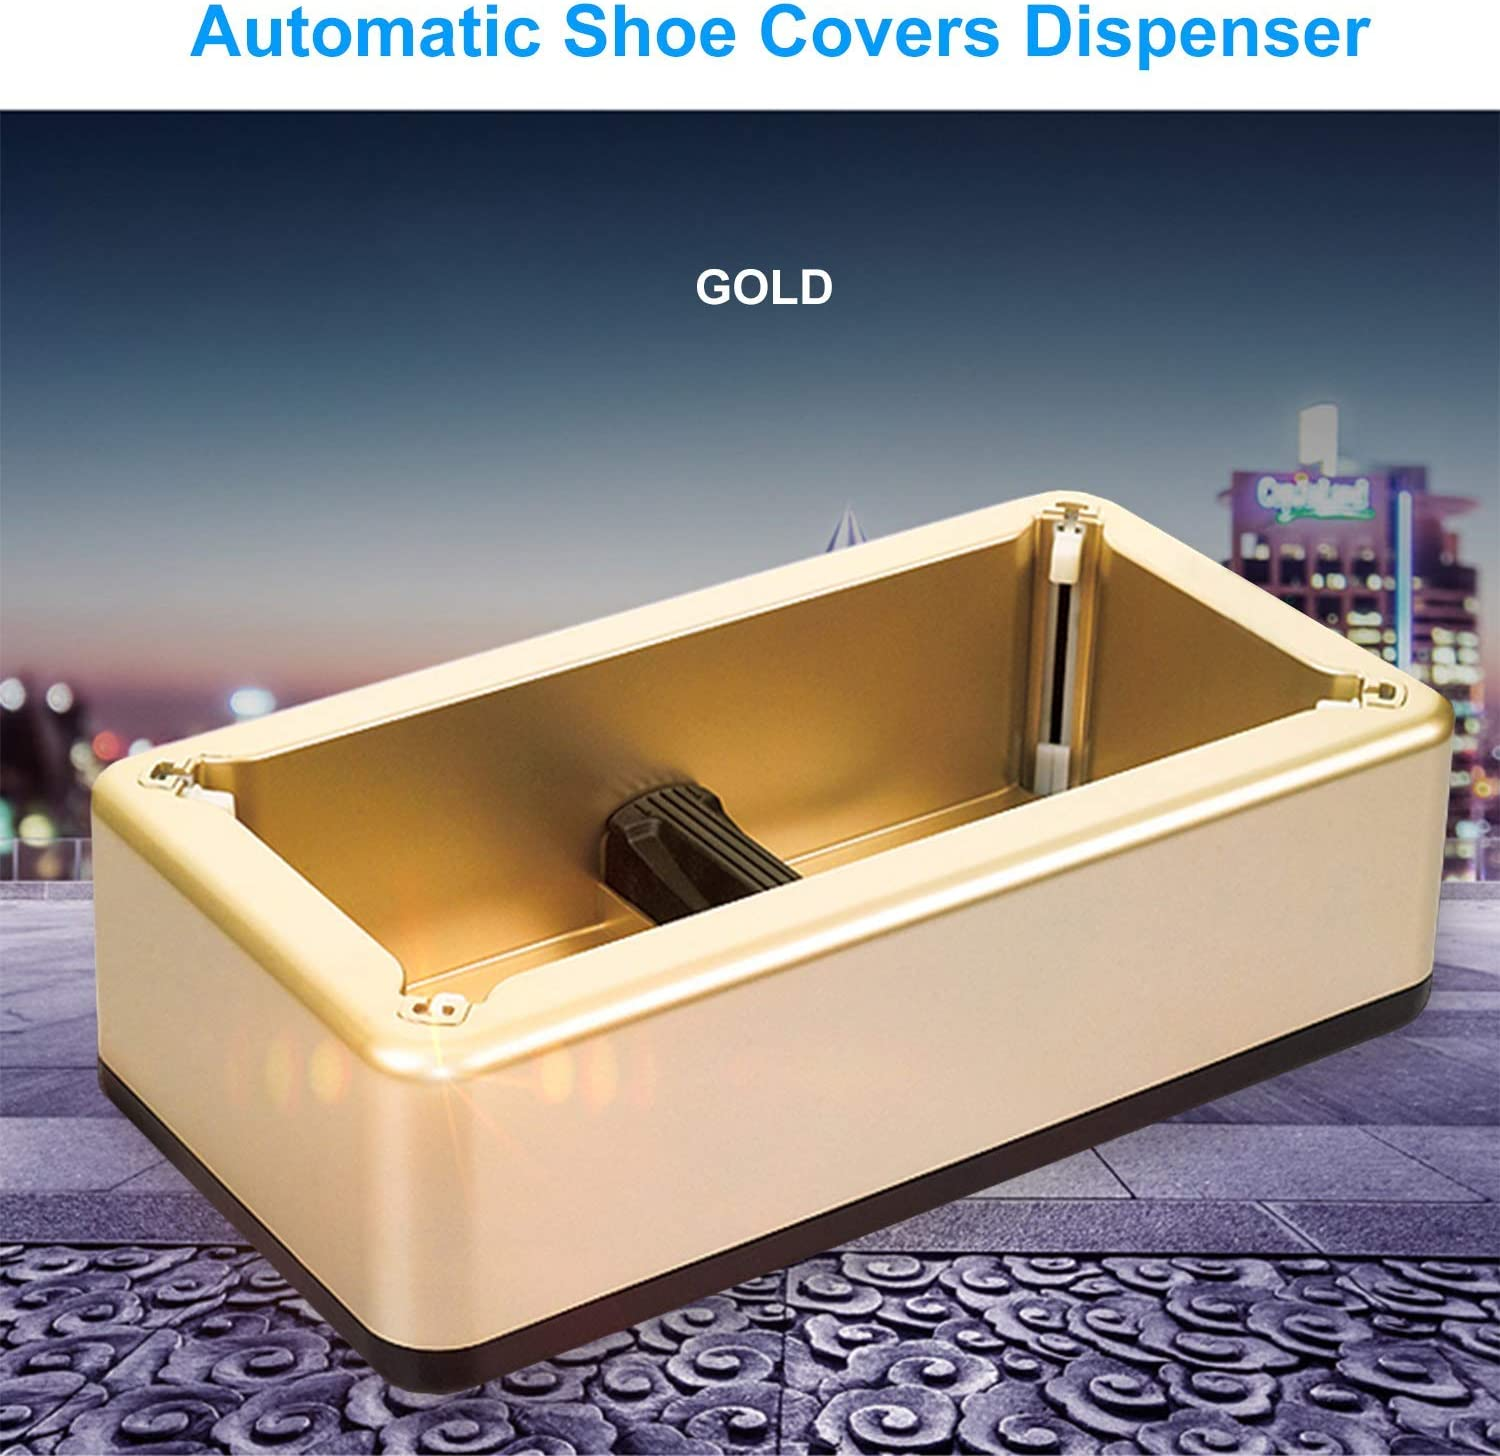 Automatic Shoe Covers Dispenser Rose Gold Shoe Covers Machine with 100 Pcs Disposable Plastic Durable Water Resistant Shoe Covers Perfect for Indoor Outdoor